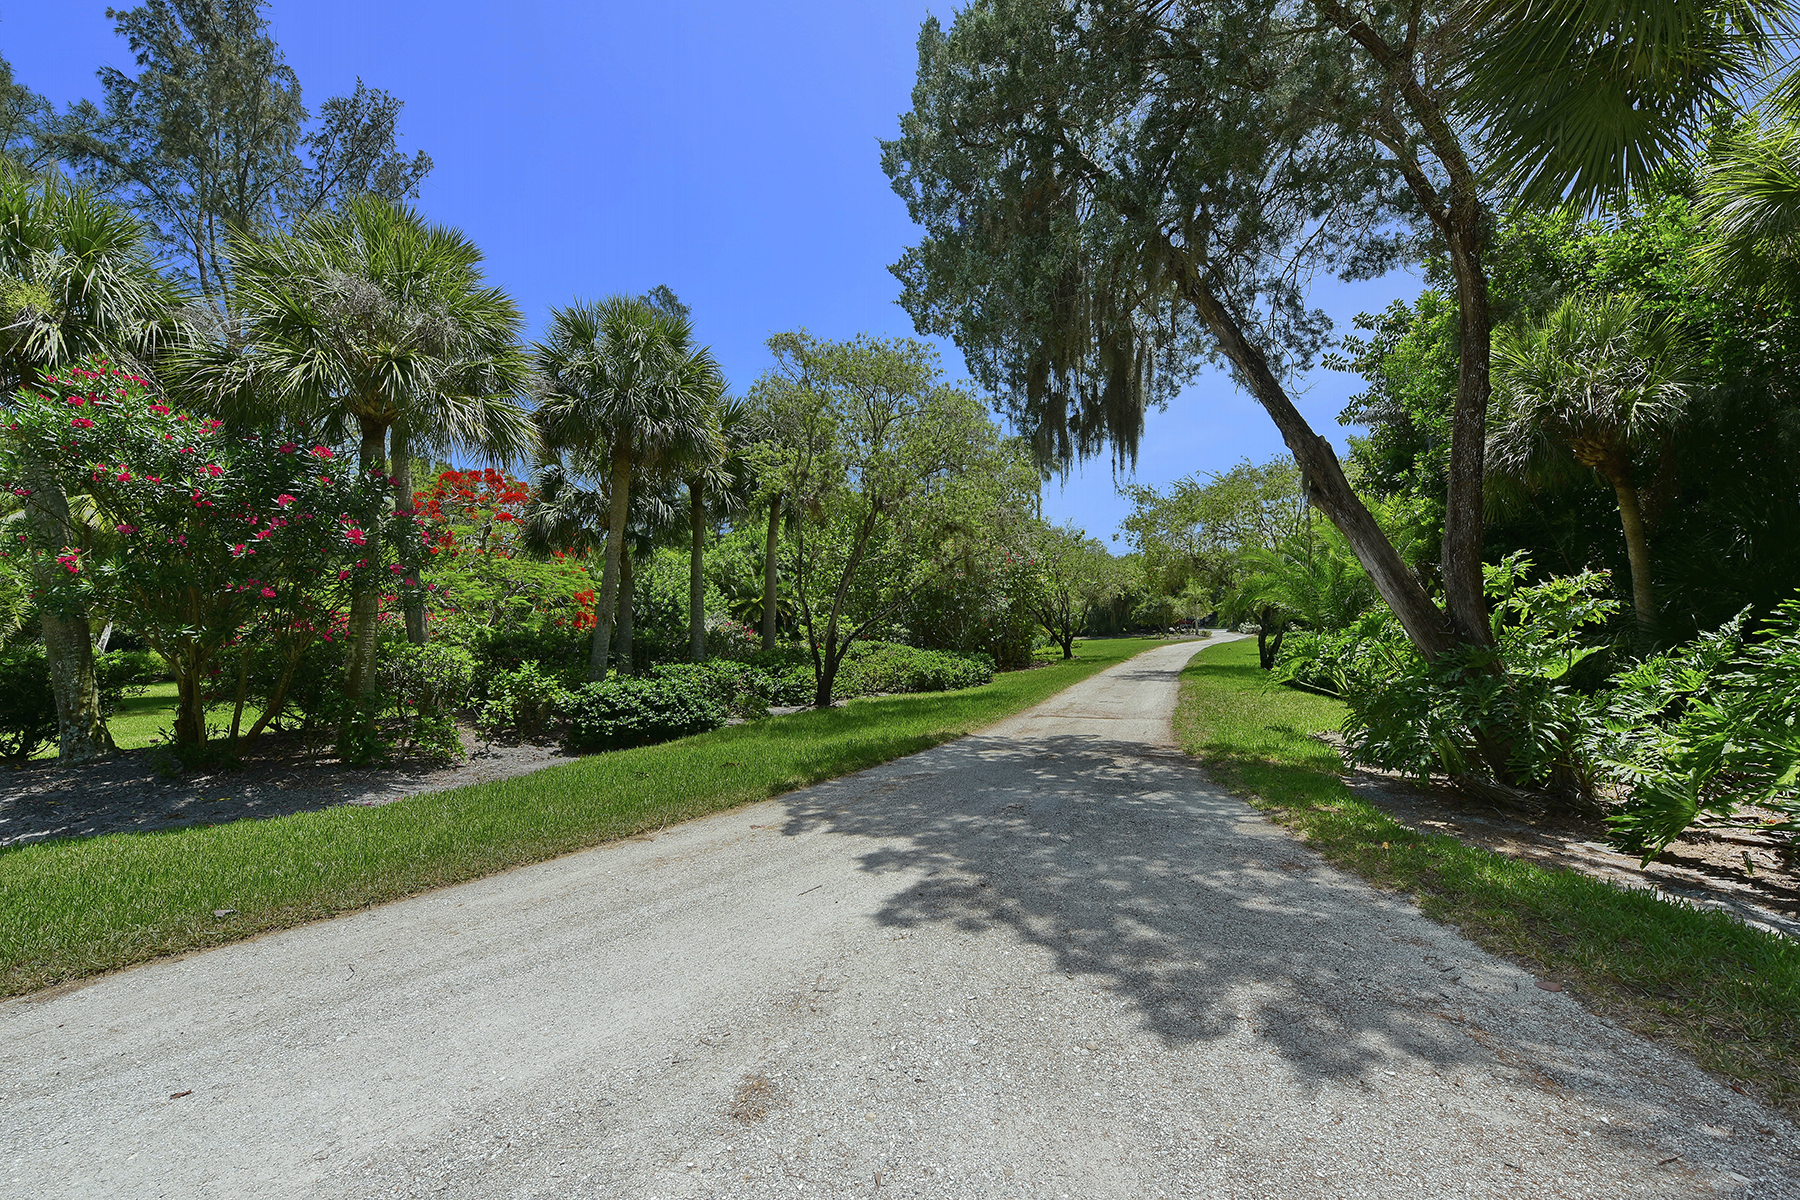 Terreno por un Venta en LONGBOAT KEY 4 ACRES 6680 Gulf Of Mexico Dr 3 & 4 Longboat Key, Florida, 34228 Estados Unidos